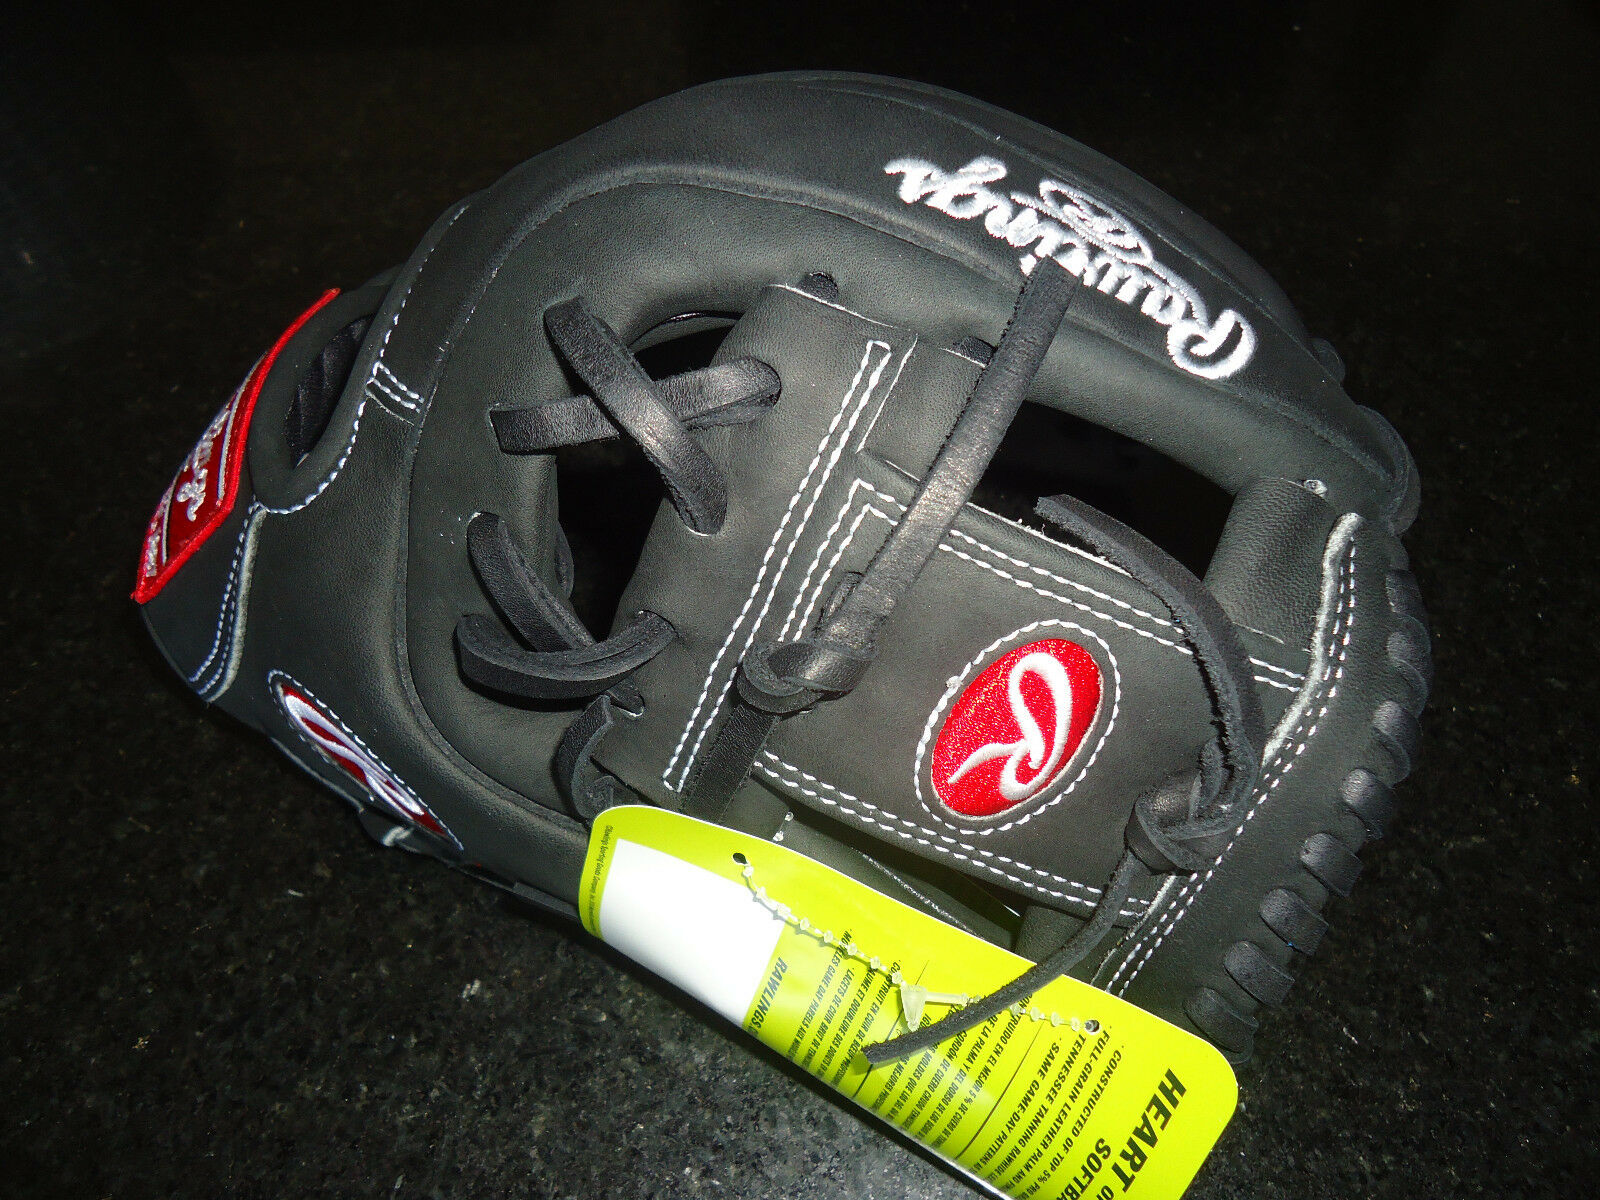 Rawlings Heart of the hide (HoH) PRO315SB-2B Fastpitch Softball guante -11.75  RH